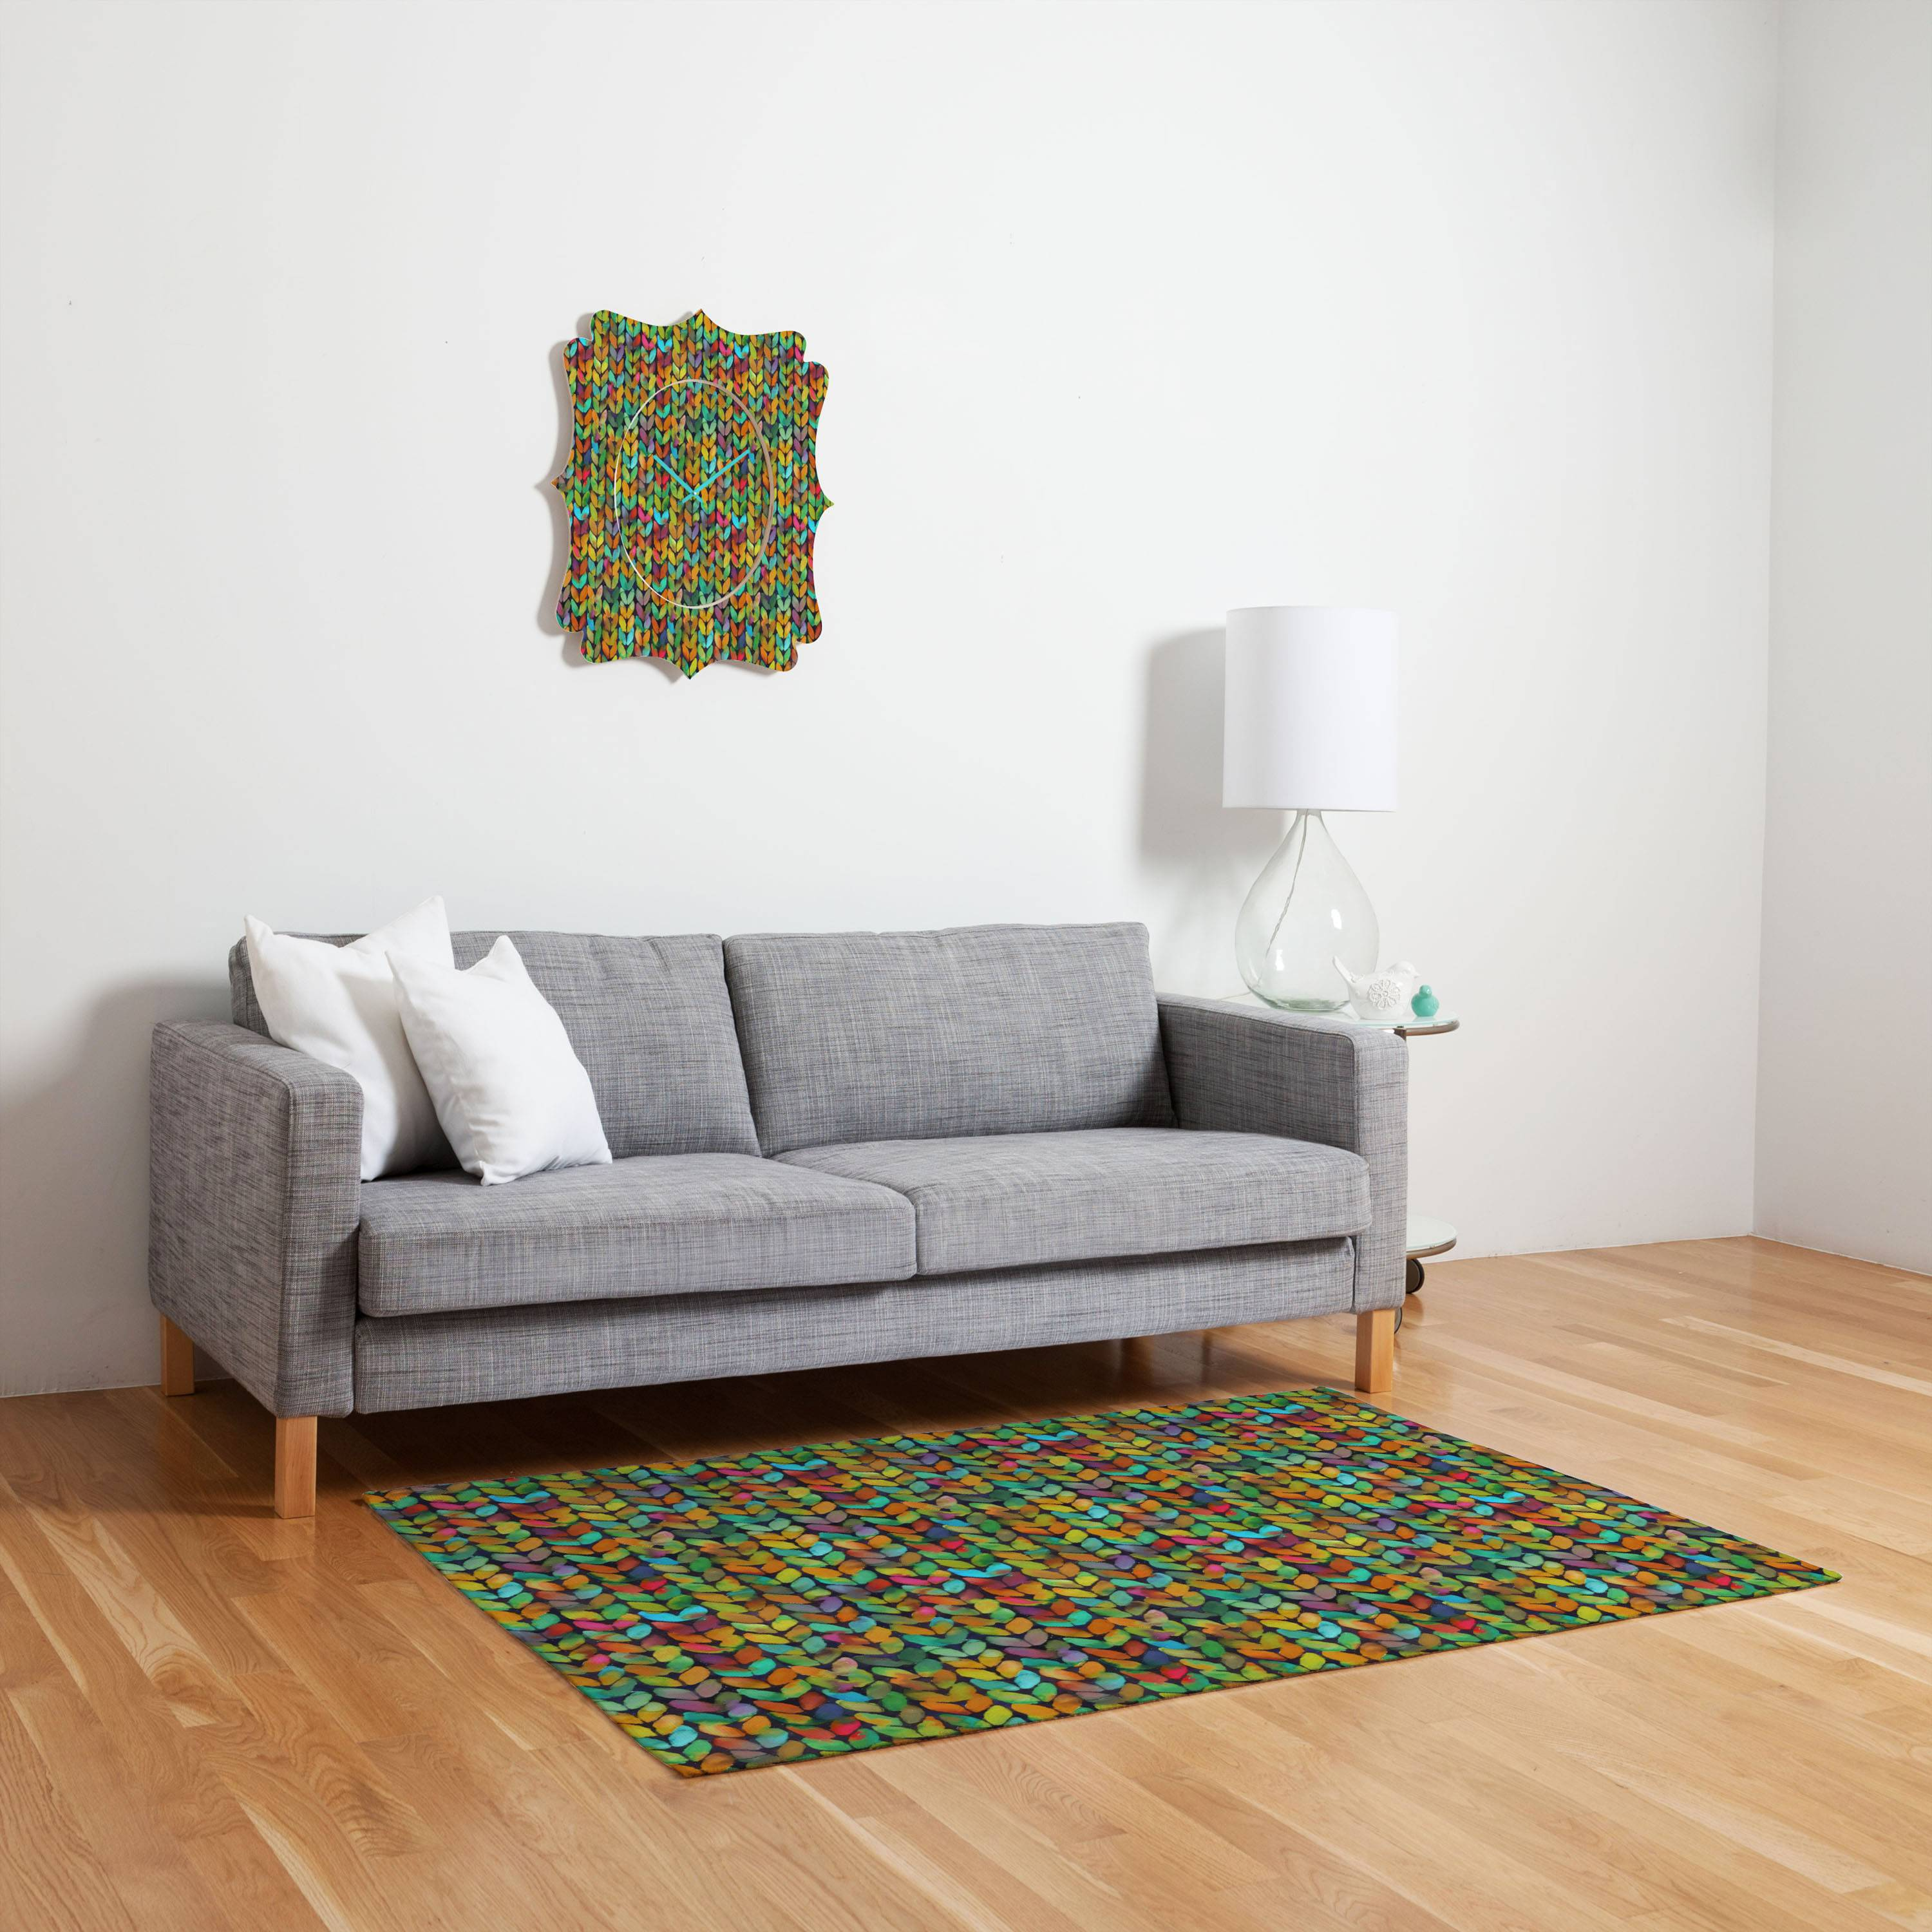 Cozying up in a favorite sweater is one of the distinct pleasures of autumn. This fall, designers and retailers are stitching up sweater motifs on an array of home decor, too, such as this Deny Designs Betsy Olmsted Acid Knit rug, printed with a vibrant and unexpected knitted motif.